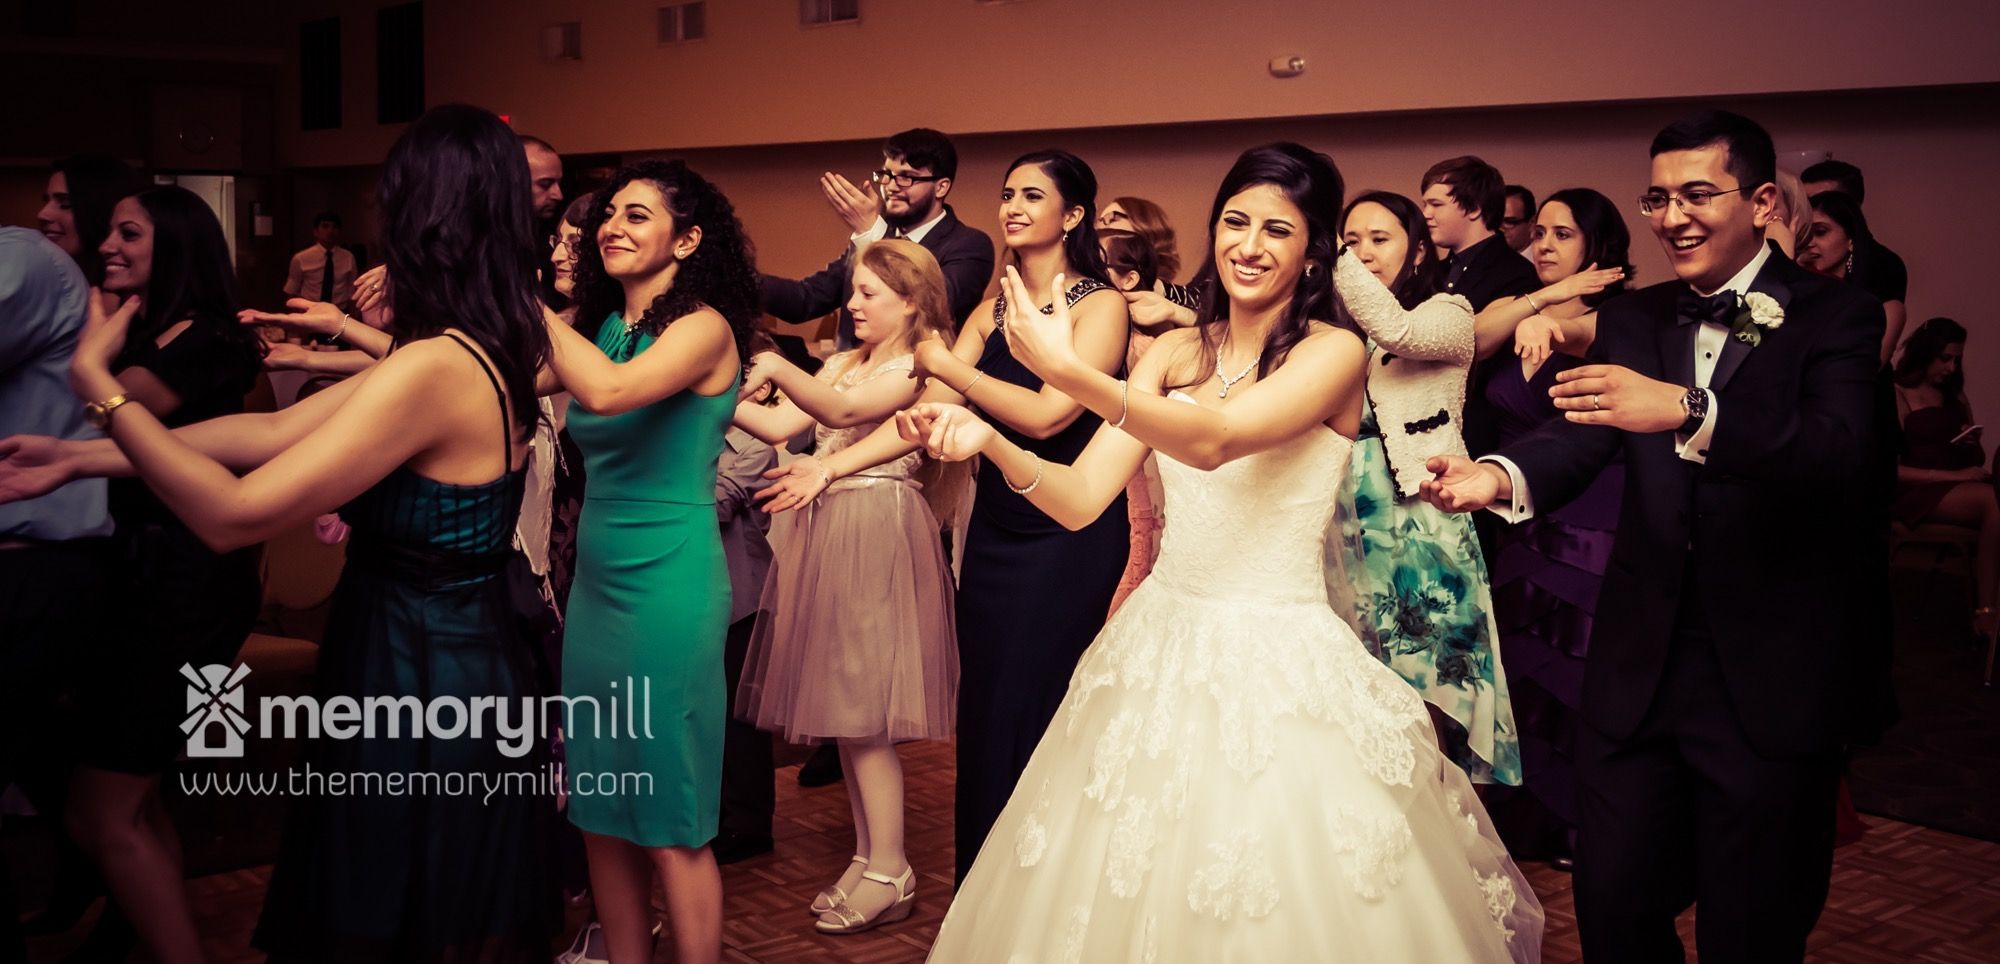 Houston Wedding Photography Reception Bride And Groom Dance With Guests Professional Photo Editing